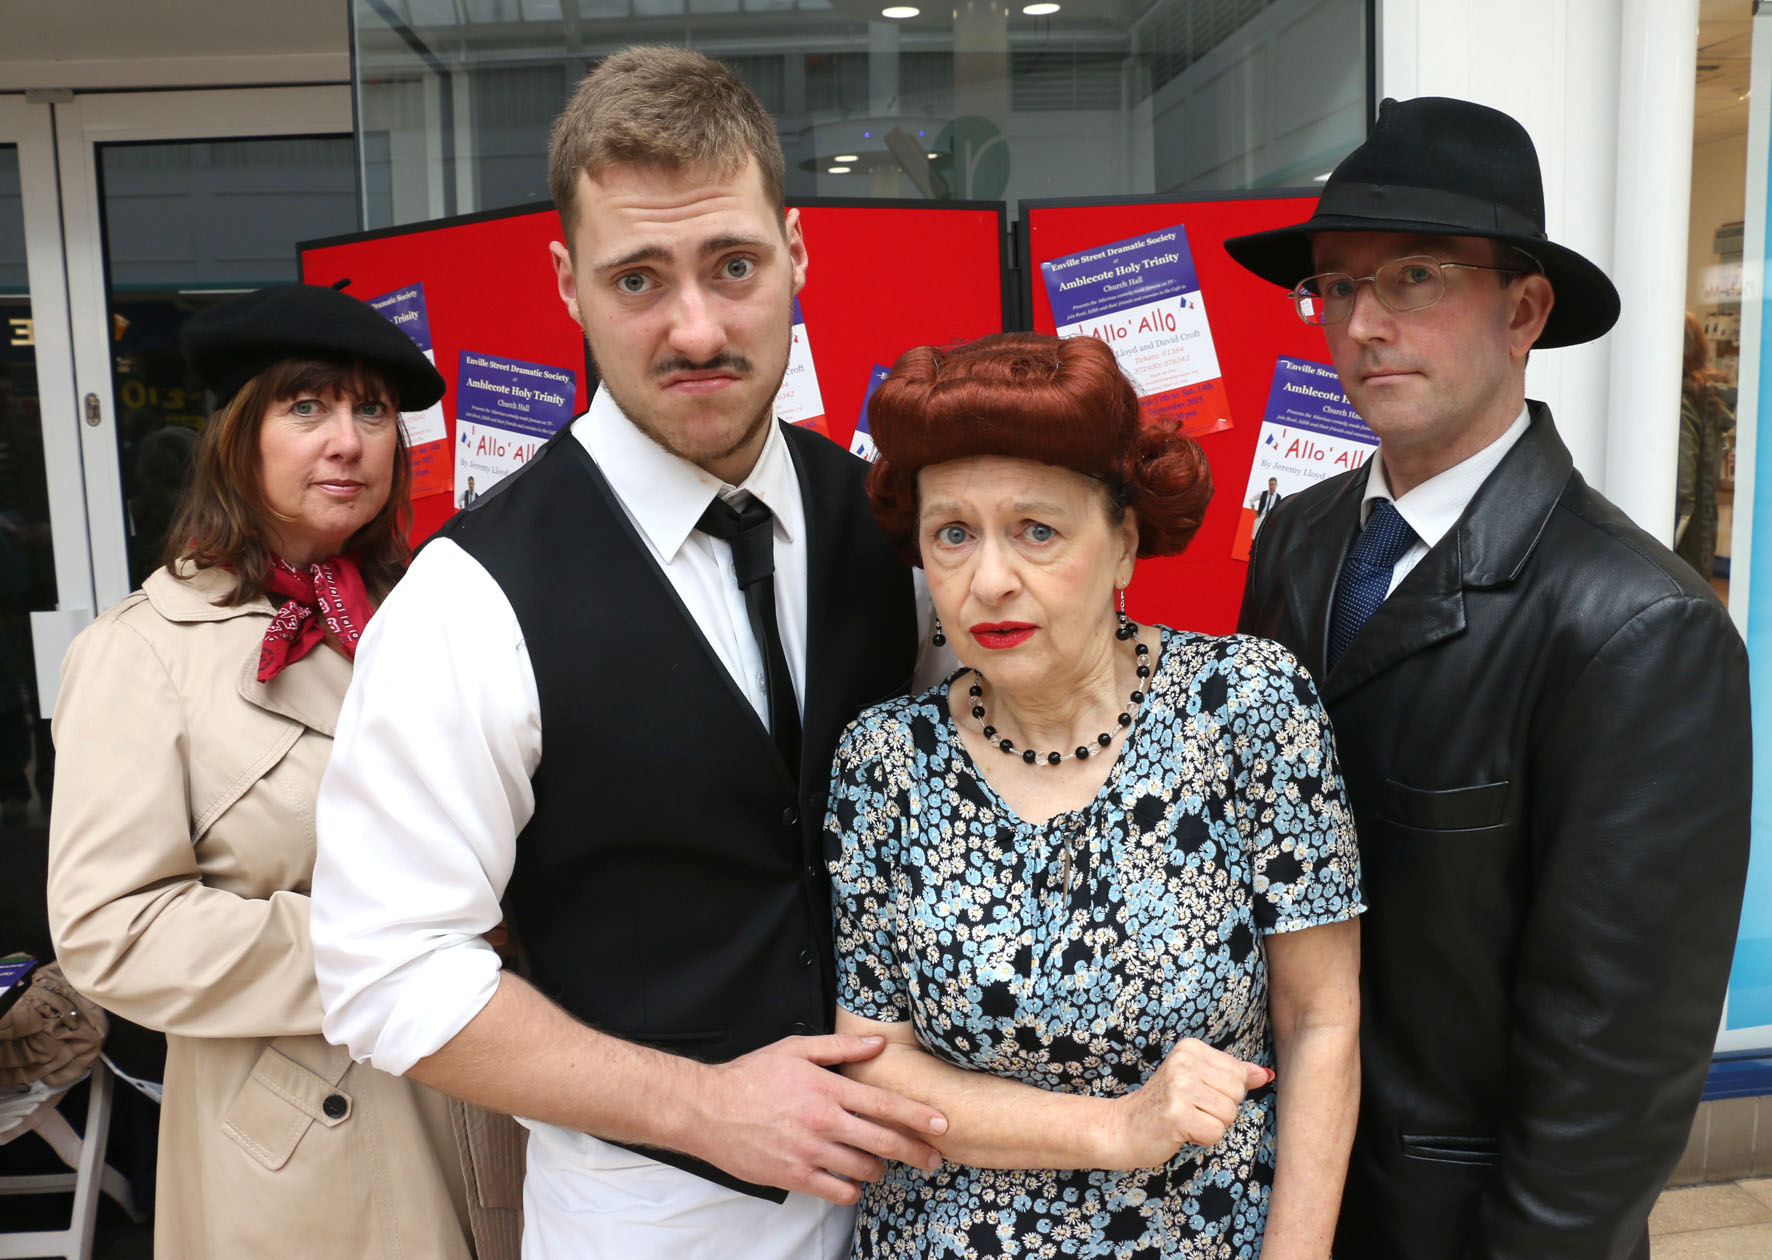 L-r Carey Esthop (Michelle), Tom Dallaway (Rene), Gaynor Wiltshire (Edith), Lee Morgan-Salcombe (Herr Flick)